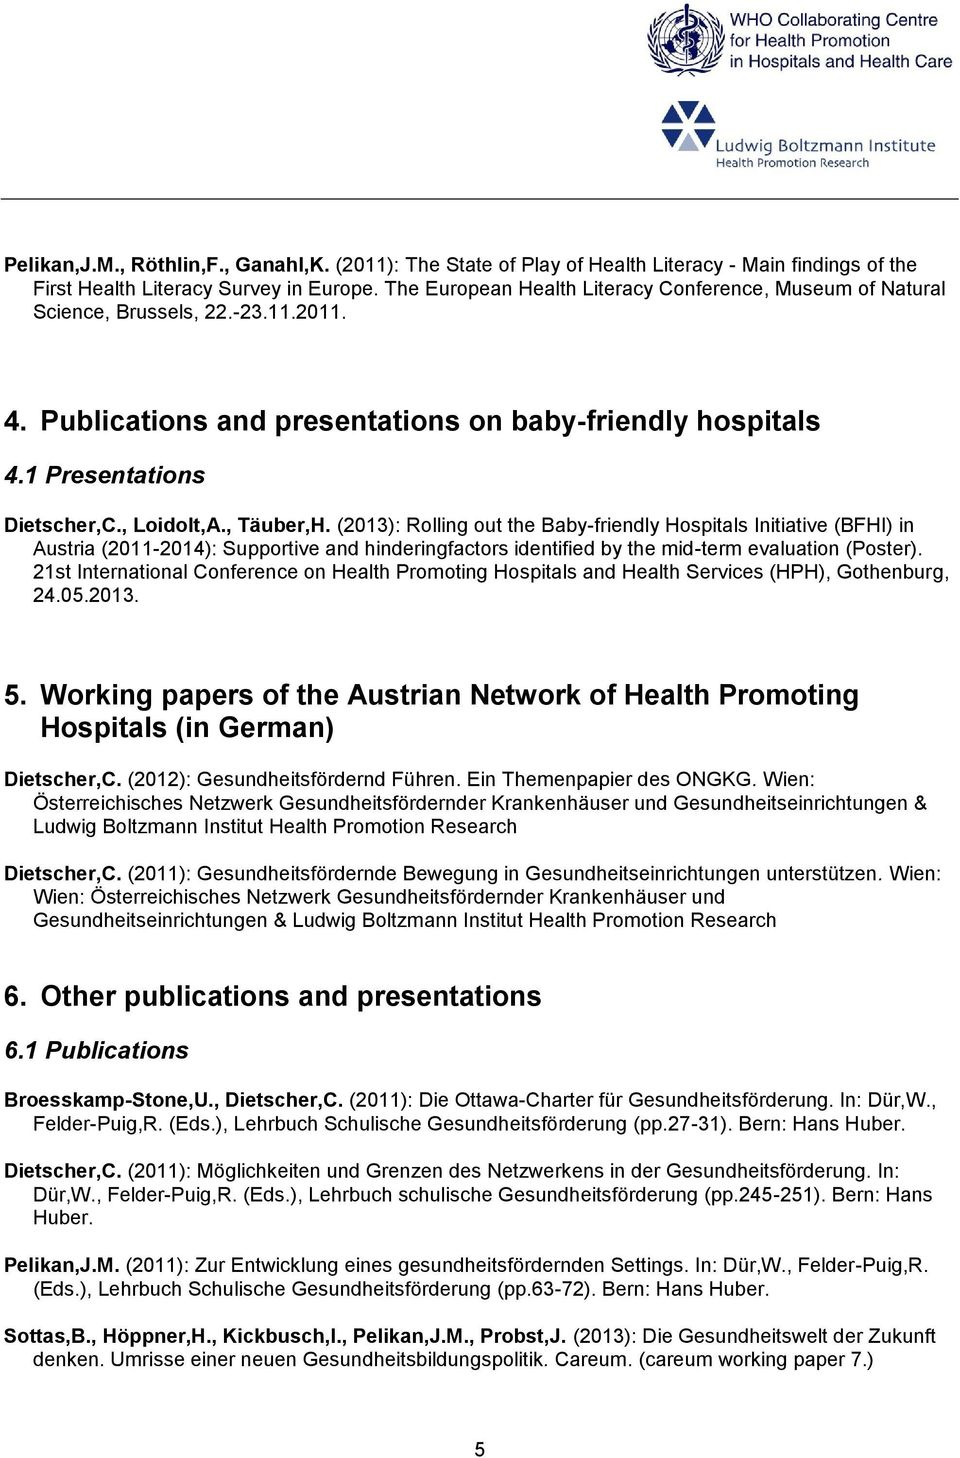 , Täuber,H. (2013): Rolling out the Baby-friendly Hospitals Initiative (BFHI) in Austria (2011-2014): Supportive and hinderingfactors identified by the mid-term evaluation (Poster).